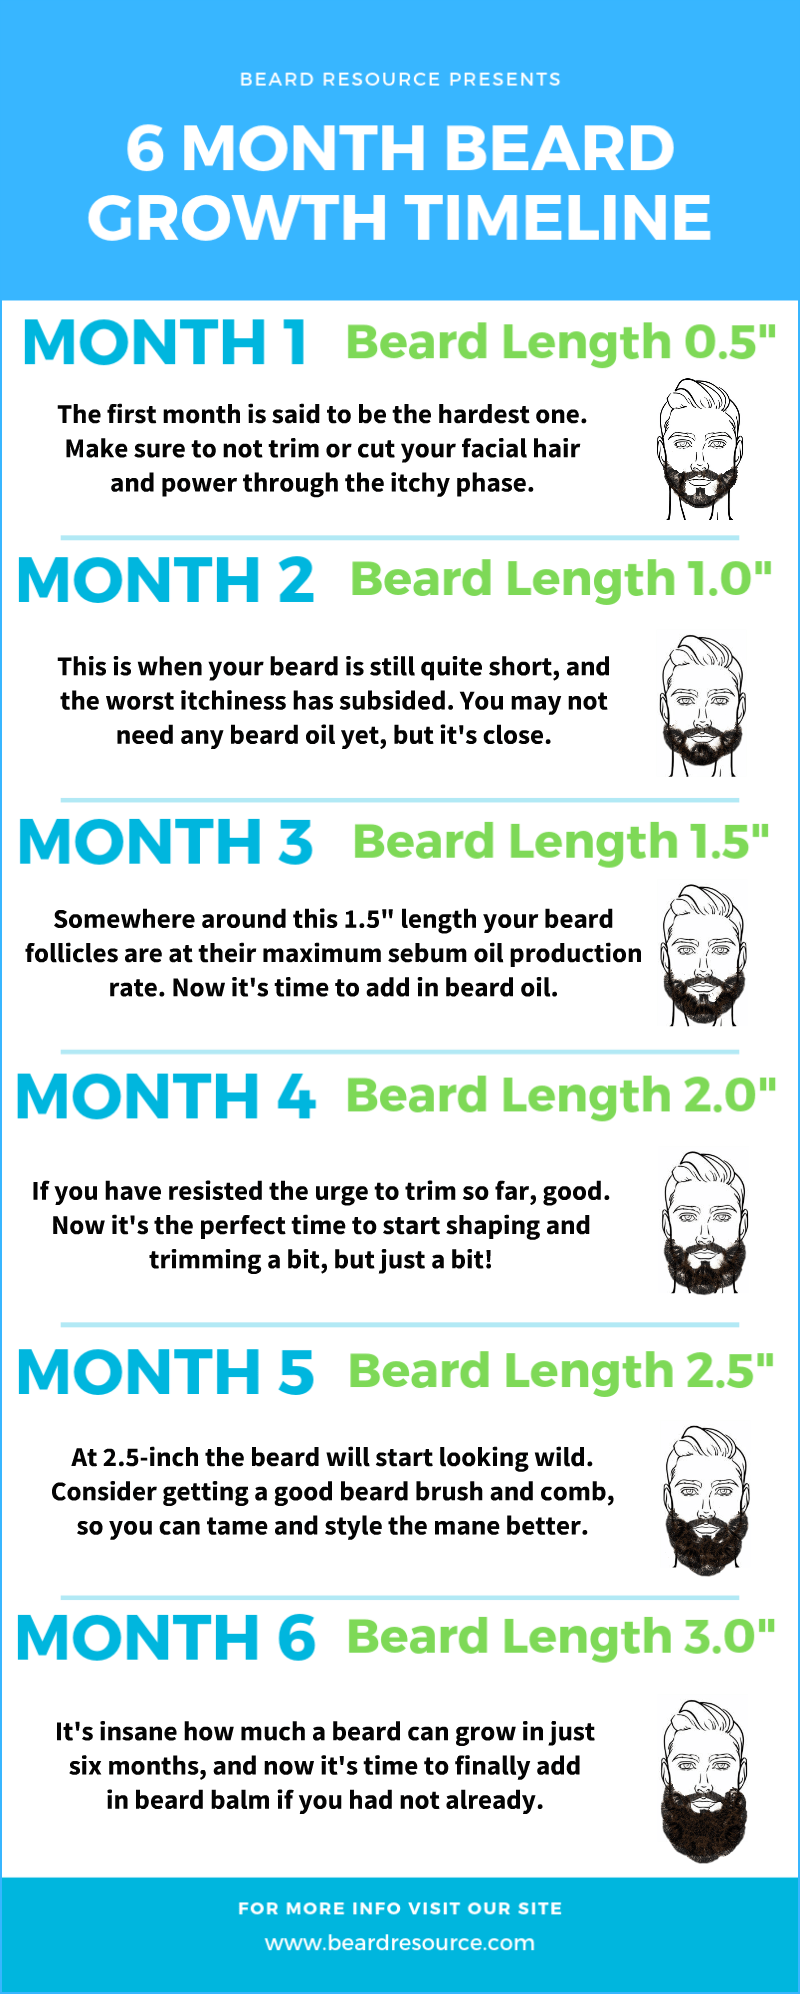 6 month beard growth timeline infographic